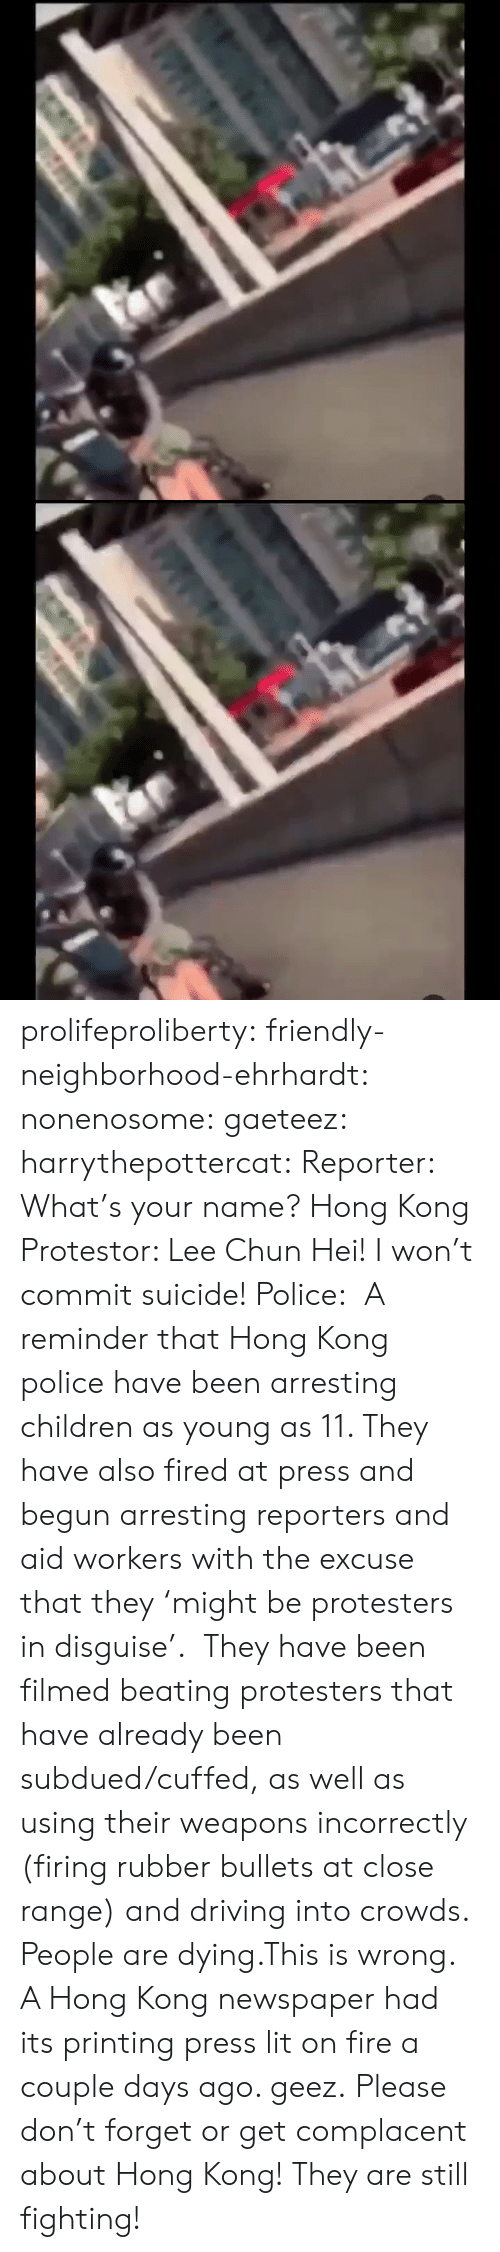 Firing: के.  ॥ल prolifeproliberty:  friendly-neighborhood-ehrhardt:  nonenosome:  gaeteez:   harrythepottercat:  Reporter: What's your name? Hong Kong Protestor: Lee Chun Hei! I won't commit suicide! Police:    A reminder that Hong Kong police have been arresting children as young as 11. They have also fired at press and begun arresting reporters and aid workers with the excuse that they 'might be protesters in disguise'.  They have been filmed beating protesters that have already been subdued/cuffed, as well as using their weapons incorrectly (firing rubber bullets at close range) and driving into crowds.  People are dying.This is wrong.    A Hong Kong newspaper had its printing press lit on fire a couple days ago.   geez.   Please don't forget or get complacent about Hong Kong! They are still fighting!